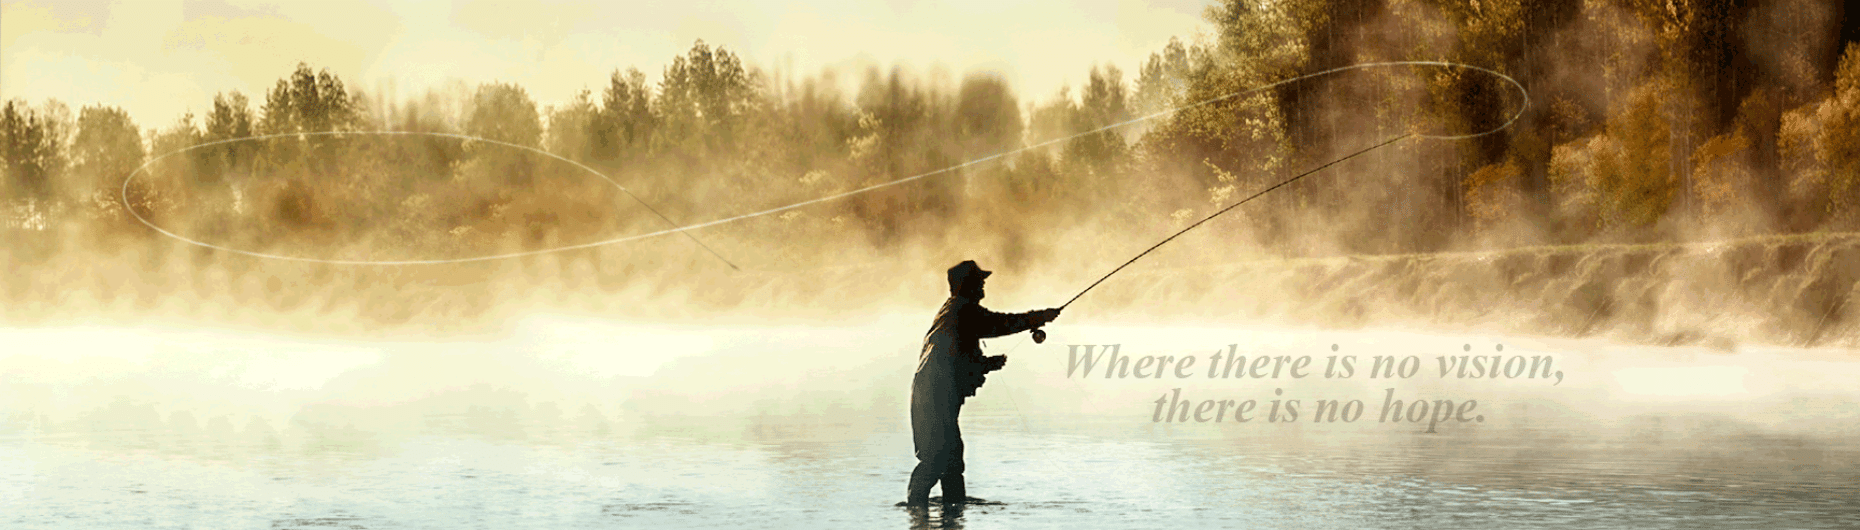 PNG ALL NEW-Fishing-header-fog